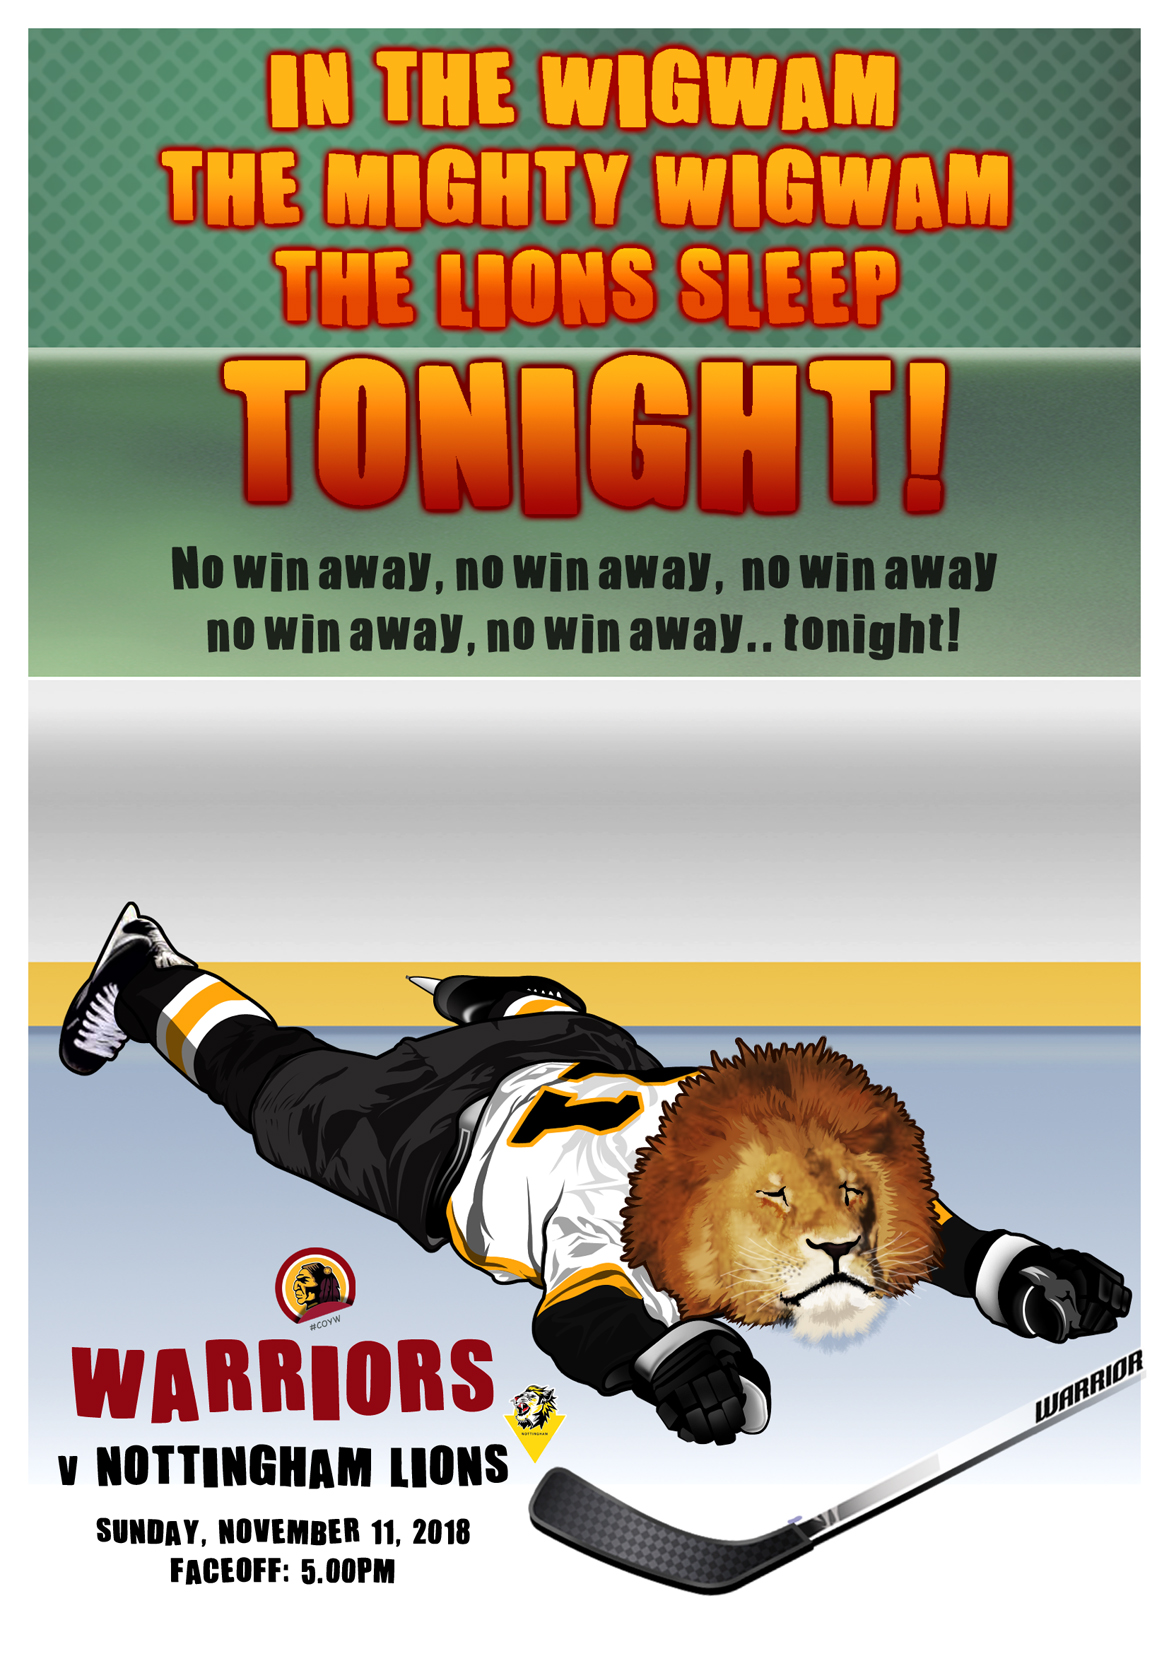 Whitley Warriors vs Nottingham Lions @ Whitley Bay Ice Rink, Sunday 11 November, face off 5pm